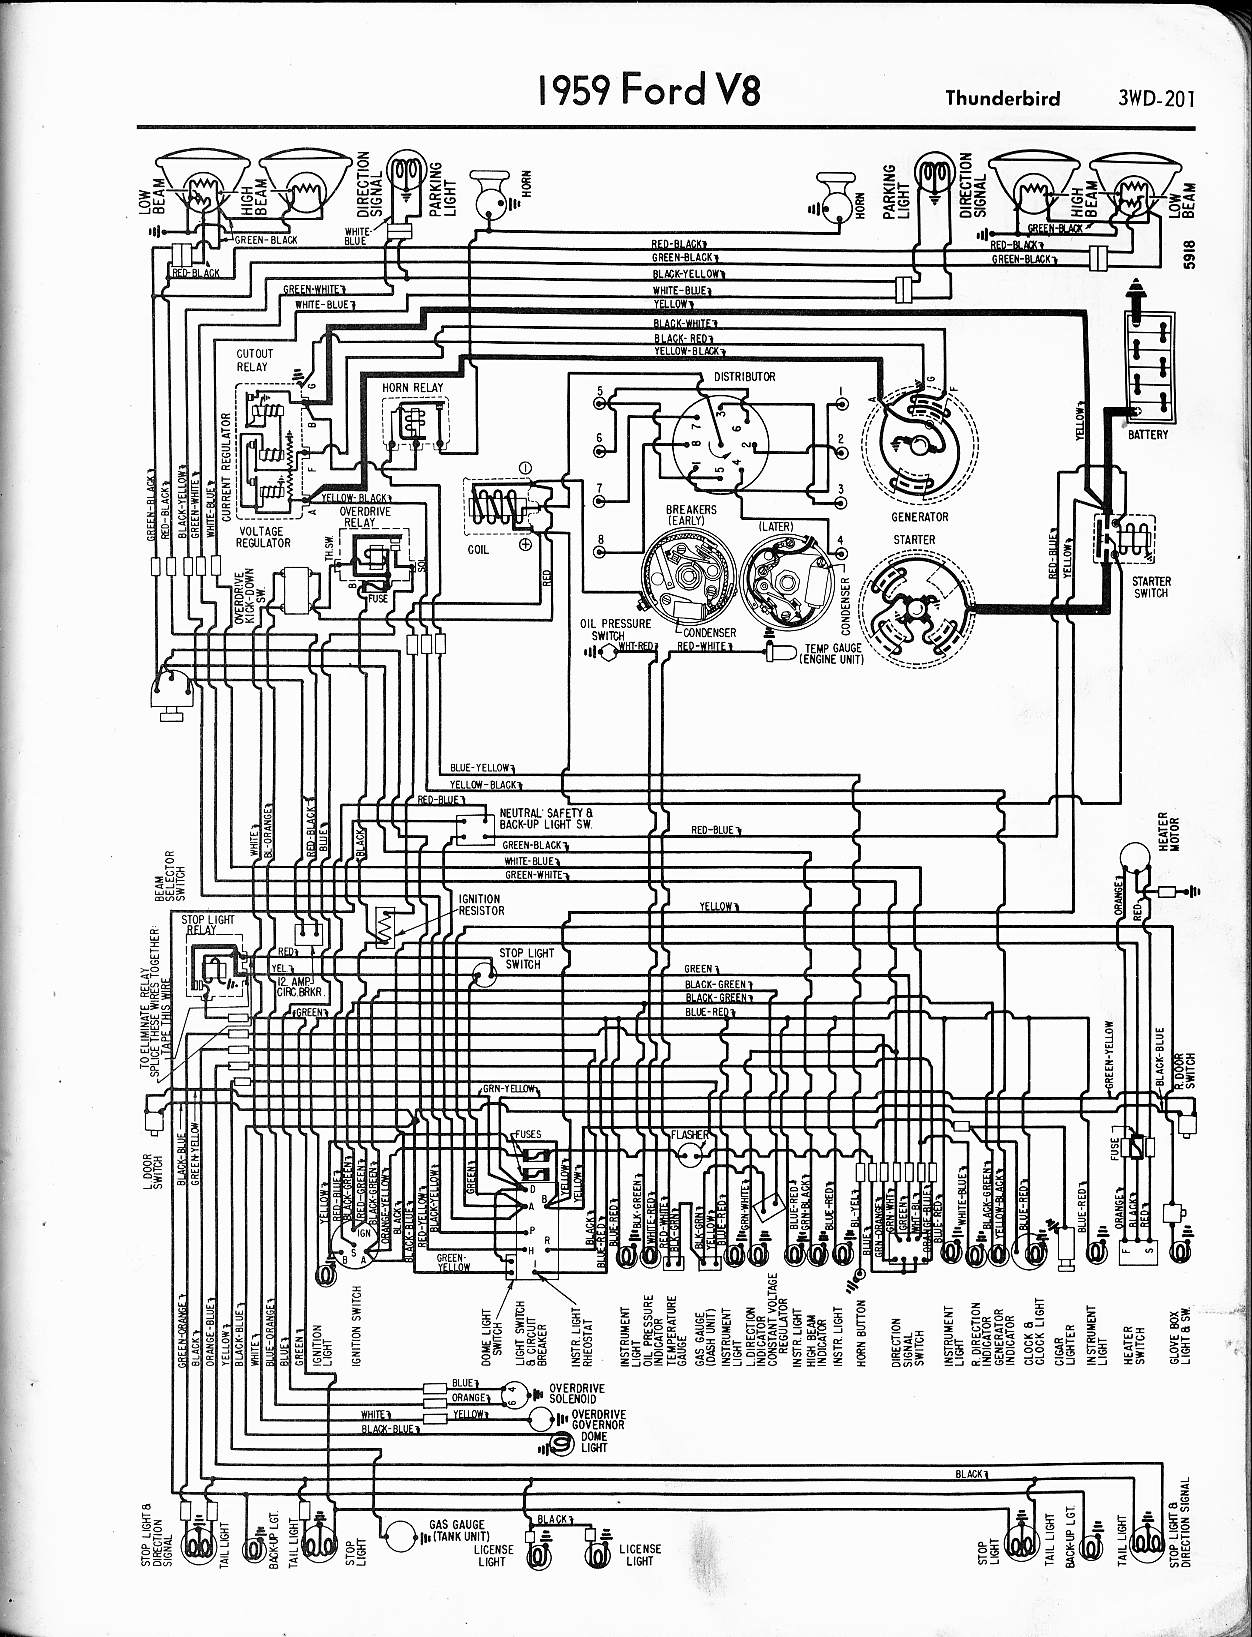 1959 ford wiring diagram wiring diagram todays57 65 ford wiring diagrams 1959 ford generator wiring diagrams 1959 ford wiring diagram